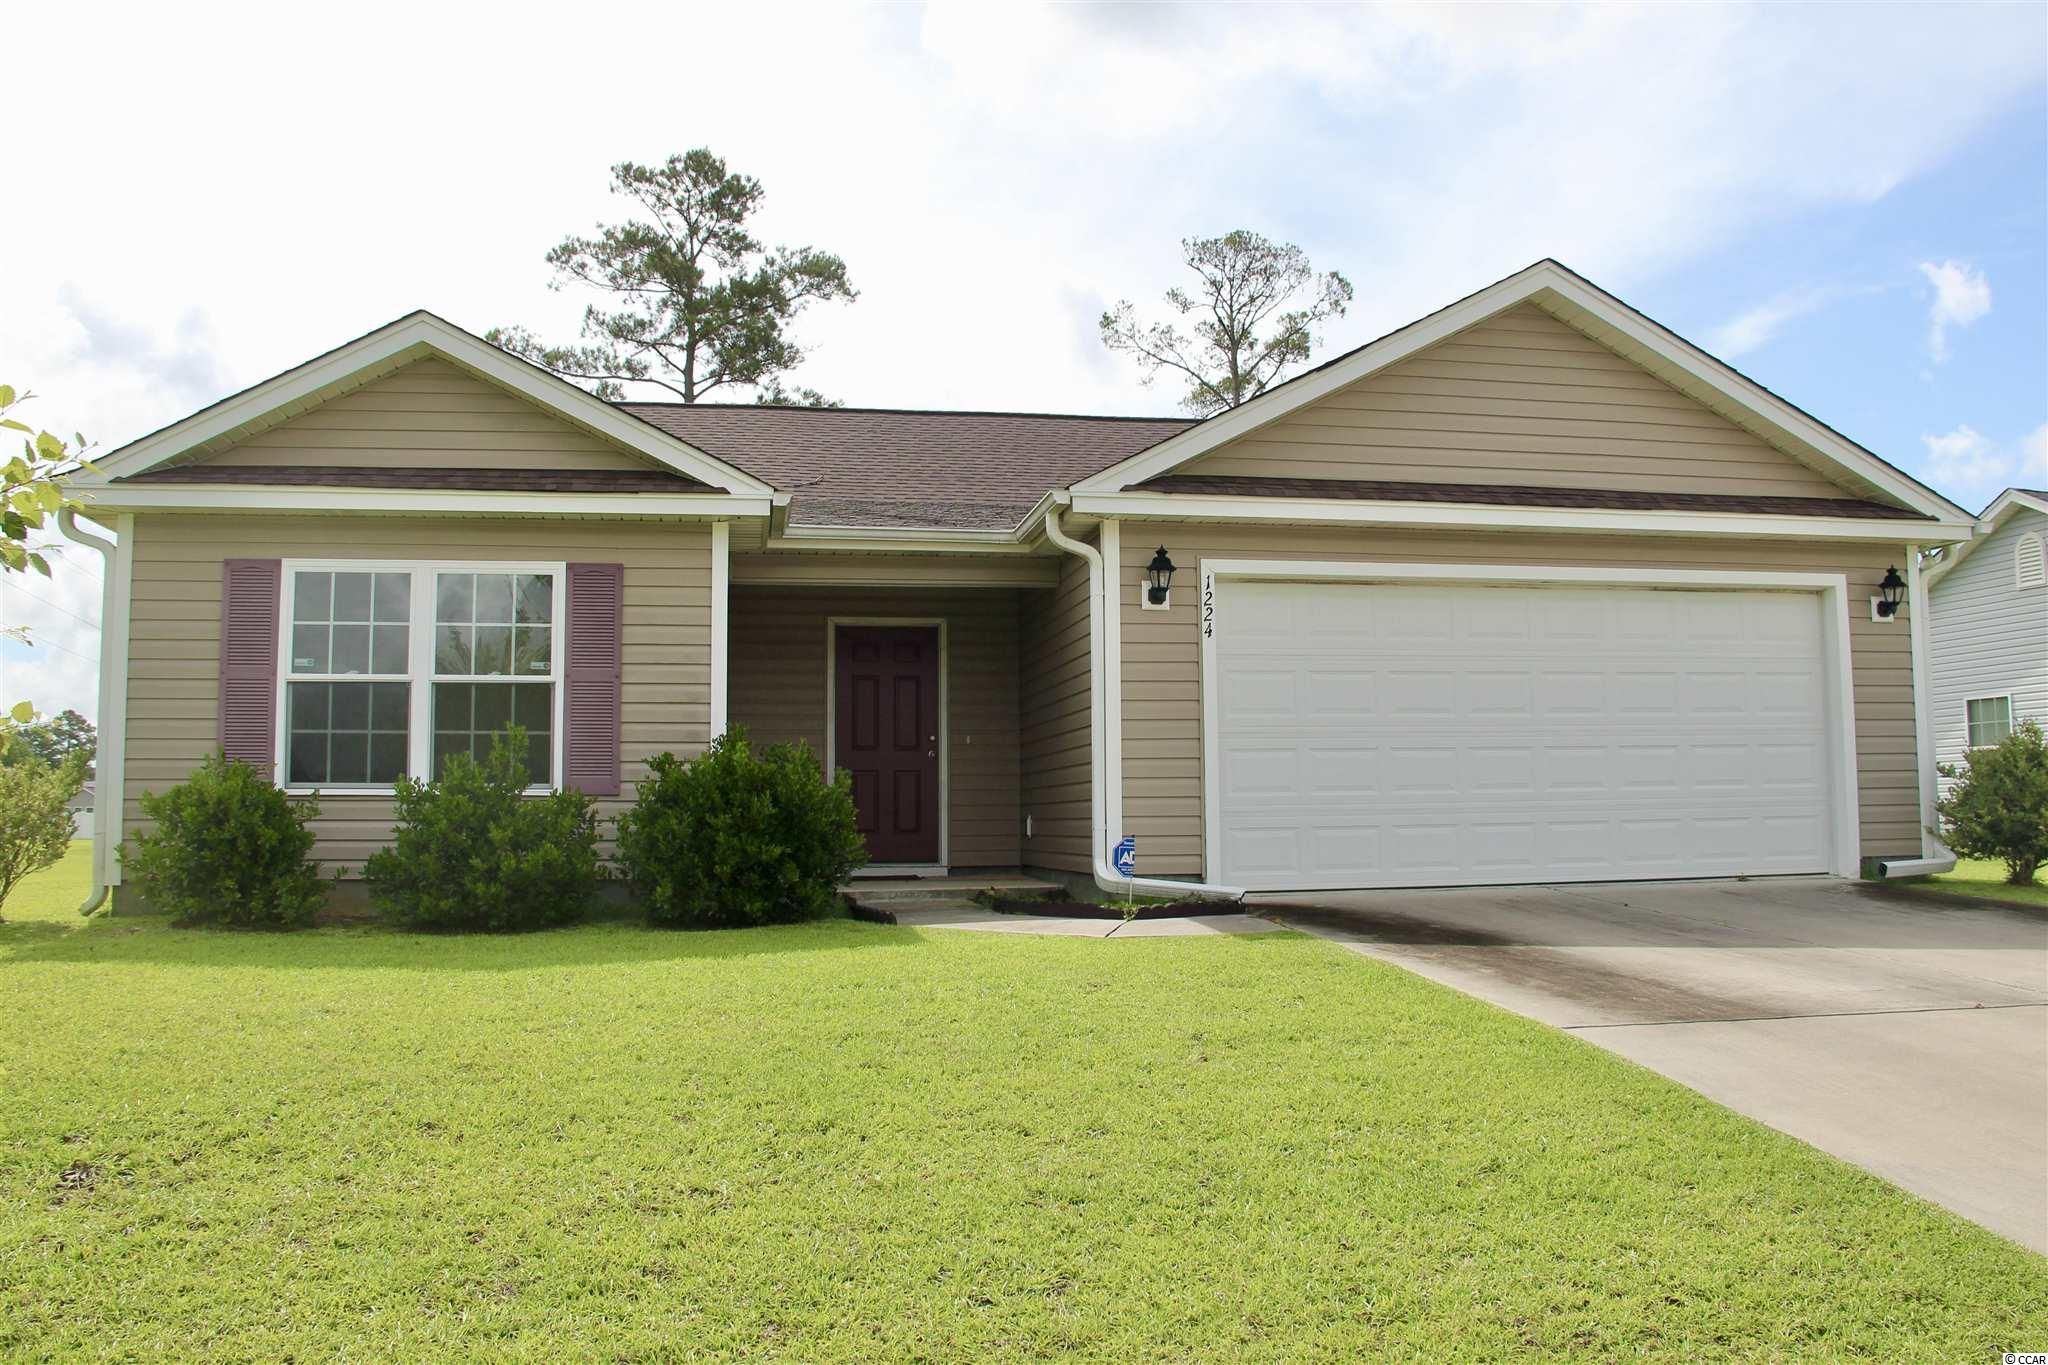 This beautiful 3 bed 2 bath home is located within minutes of downtown Conway and is just a short drive to the beach. With NO HOA you have the freedom to make this home your own inside and out without the hassle of rules and regulations. With a spacious back yard, you'll have plenty of room for outdoor entertainment, parking your boat or RV, and space for the 4 legged furry friends. The open floor plan concepts is always flooded with plenty of natural light and has an inviting appeal. This home wont last long so don't hesitate, schedule a showing today.